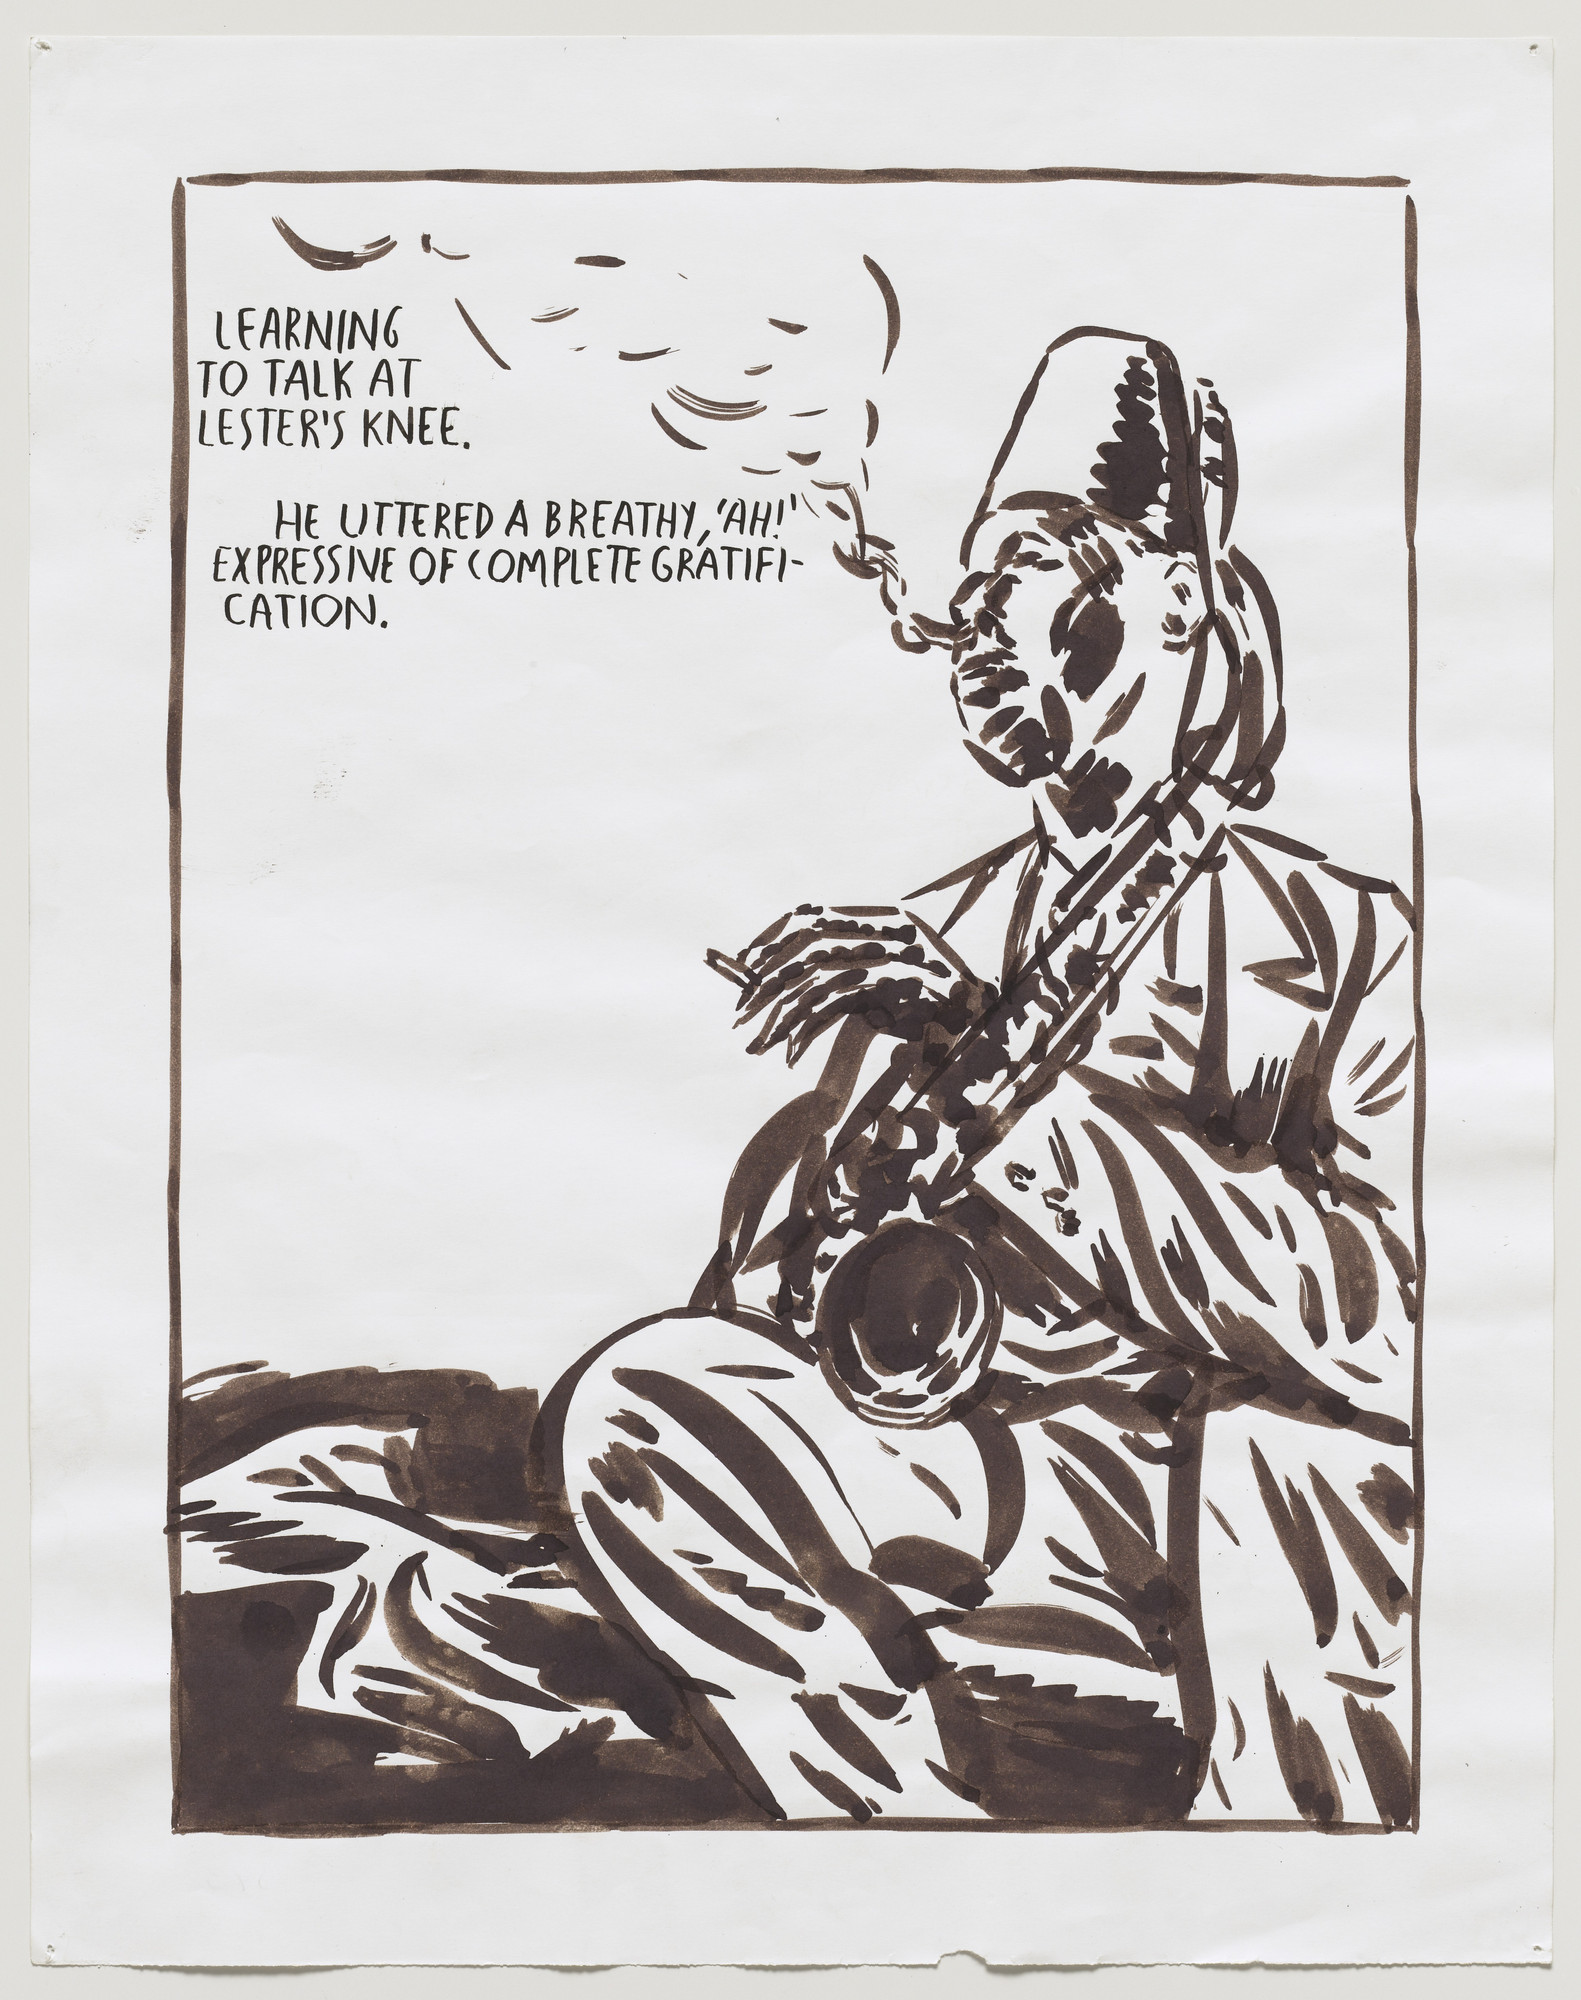 Raymond Pettibon. No Title (Learning to talk). 1989